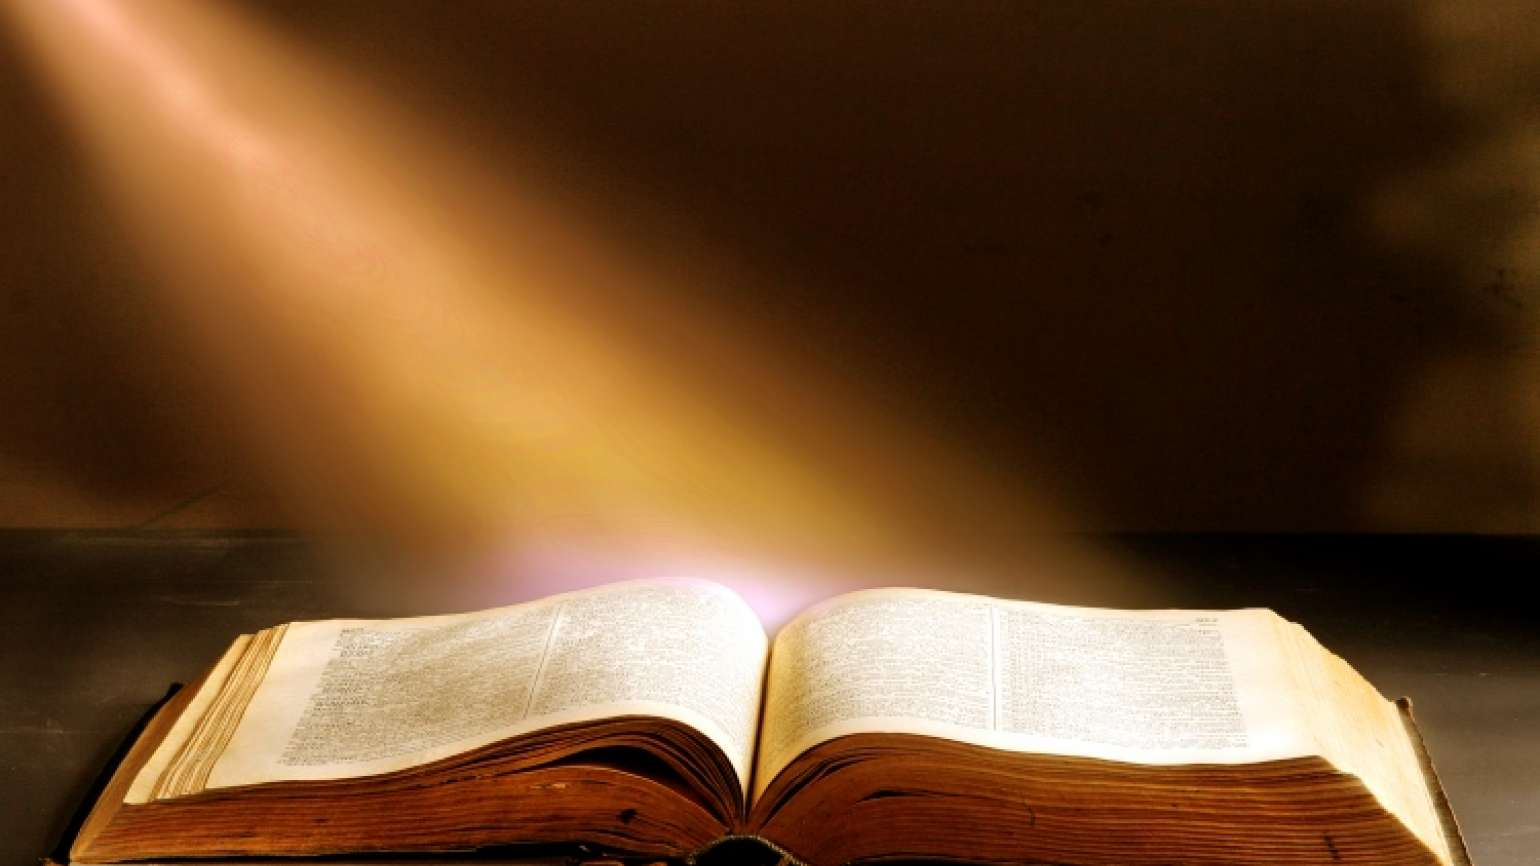 The Bible Is the Source of Faith